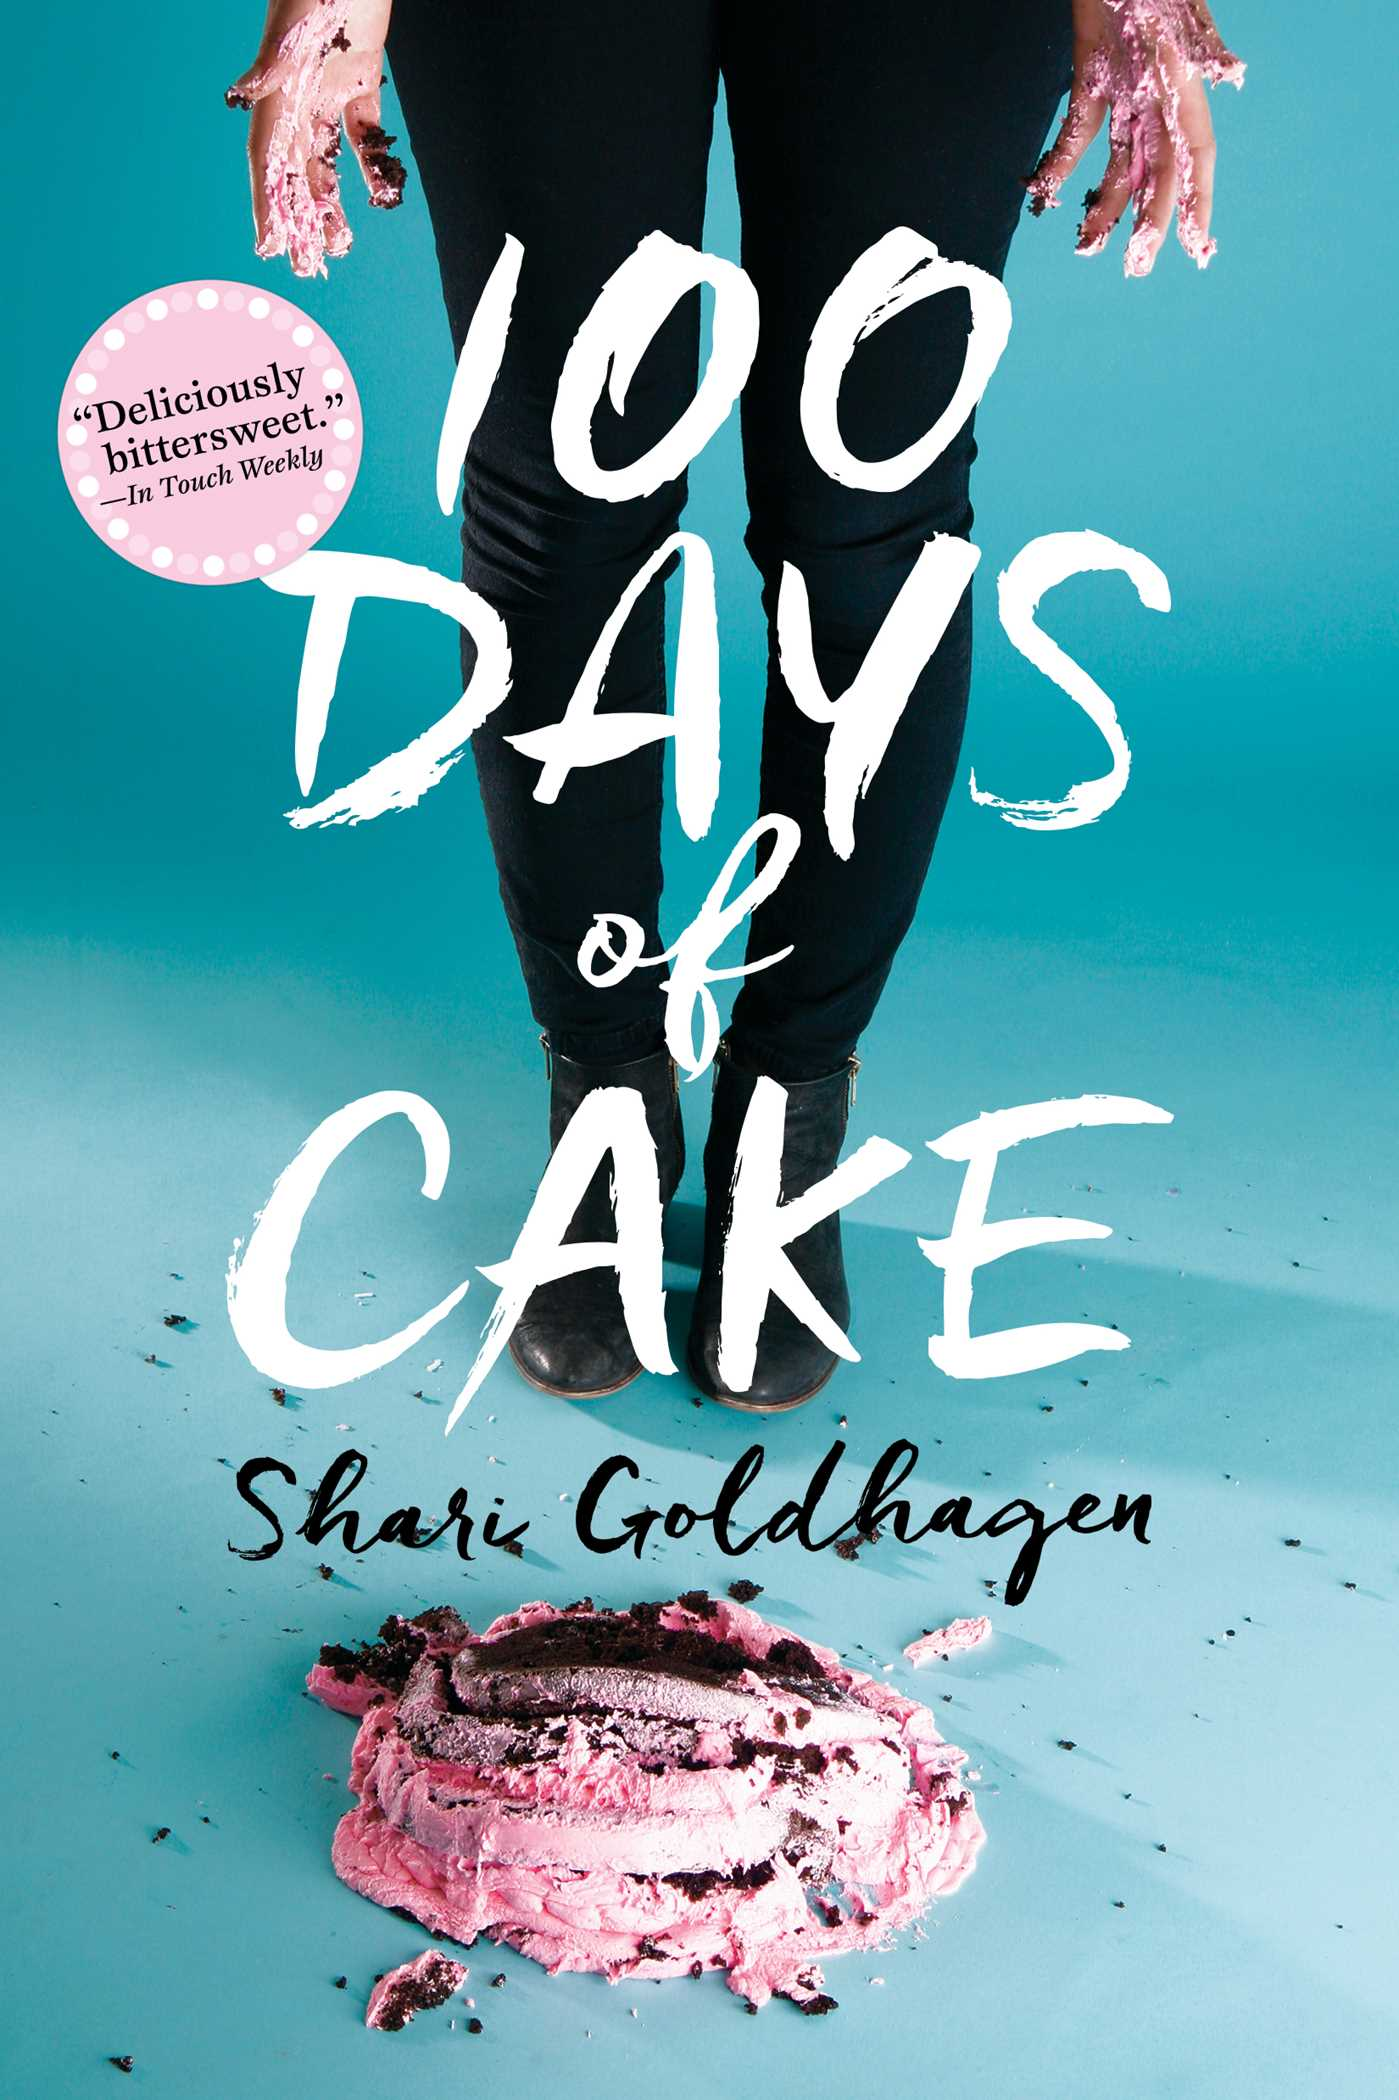 100 days of cake 9781481448574 hr